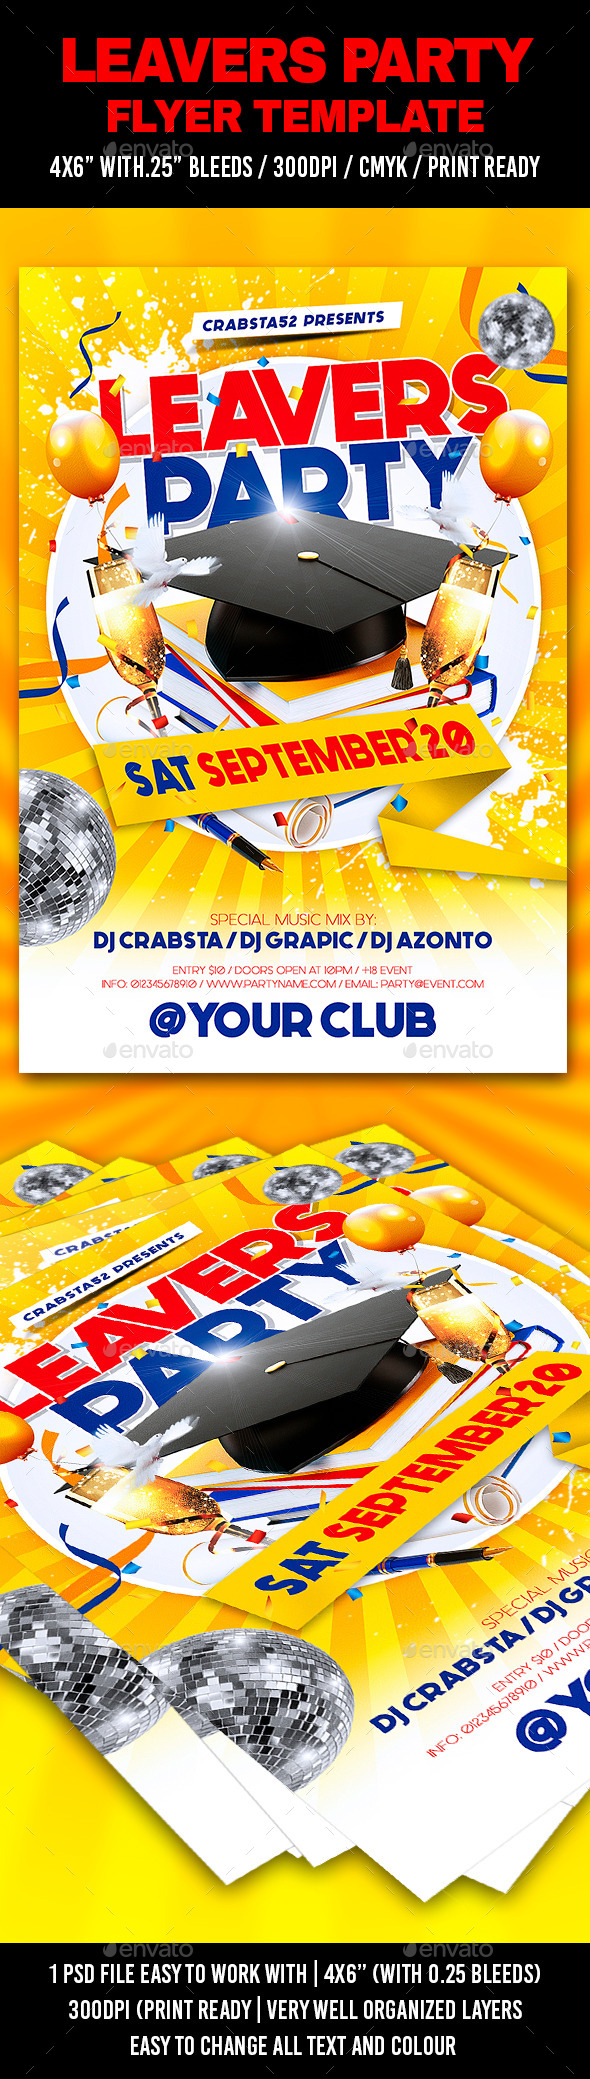 Leavers Party Flyer Template  - Flyers Print Templates